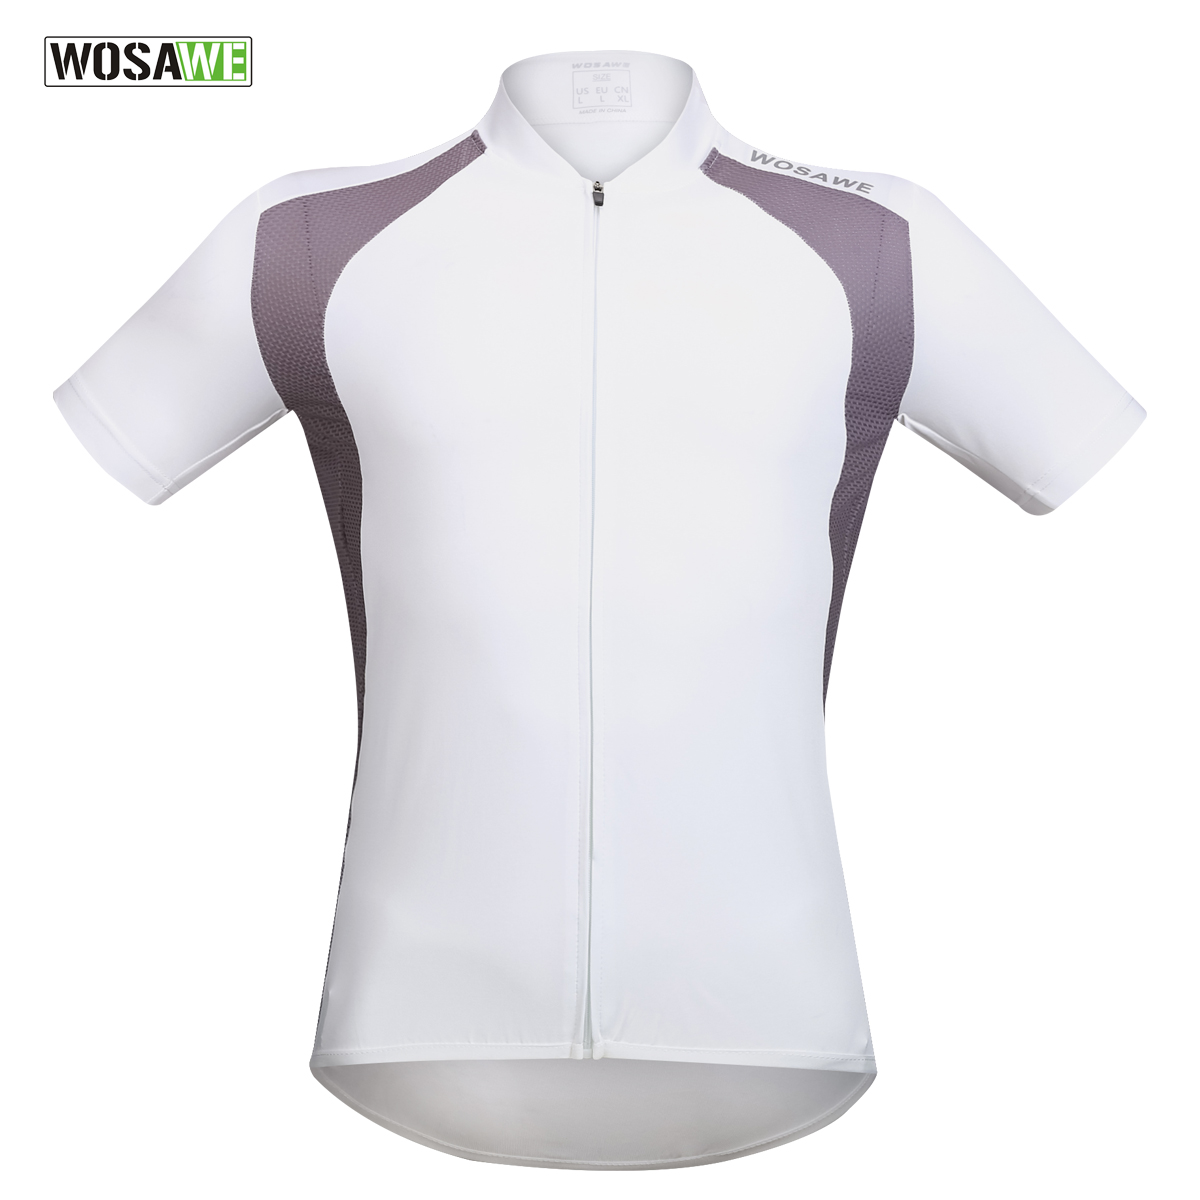 WOSAWE Cycling Jersey Ropa Ciclismo Summer Excellent Elasticity Summer Men Quick Dry Bicycle Wear Black and White S-2XLWOSAWE Cycling Jersey Ropa Ciclismo Summer Excellent Elasticity Summer Men Quick Dry Bicycle Wear Black and White S-2XL